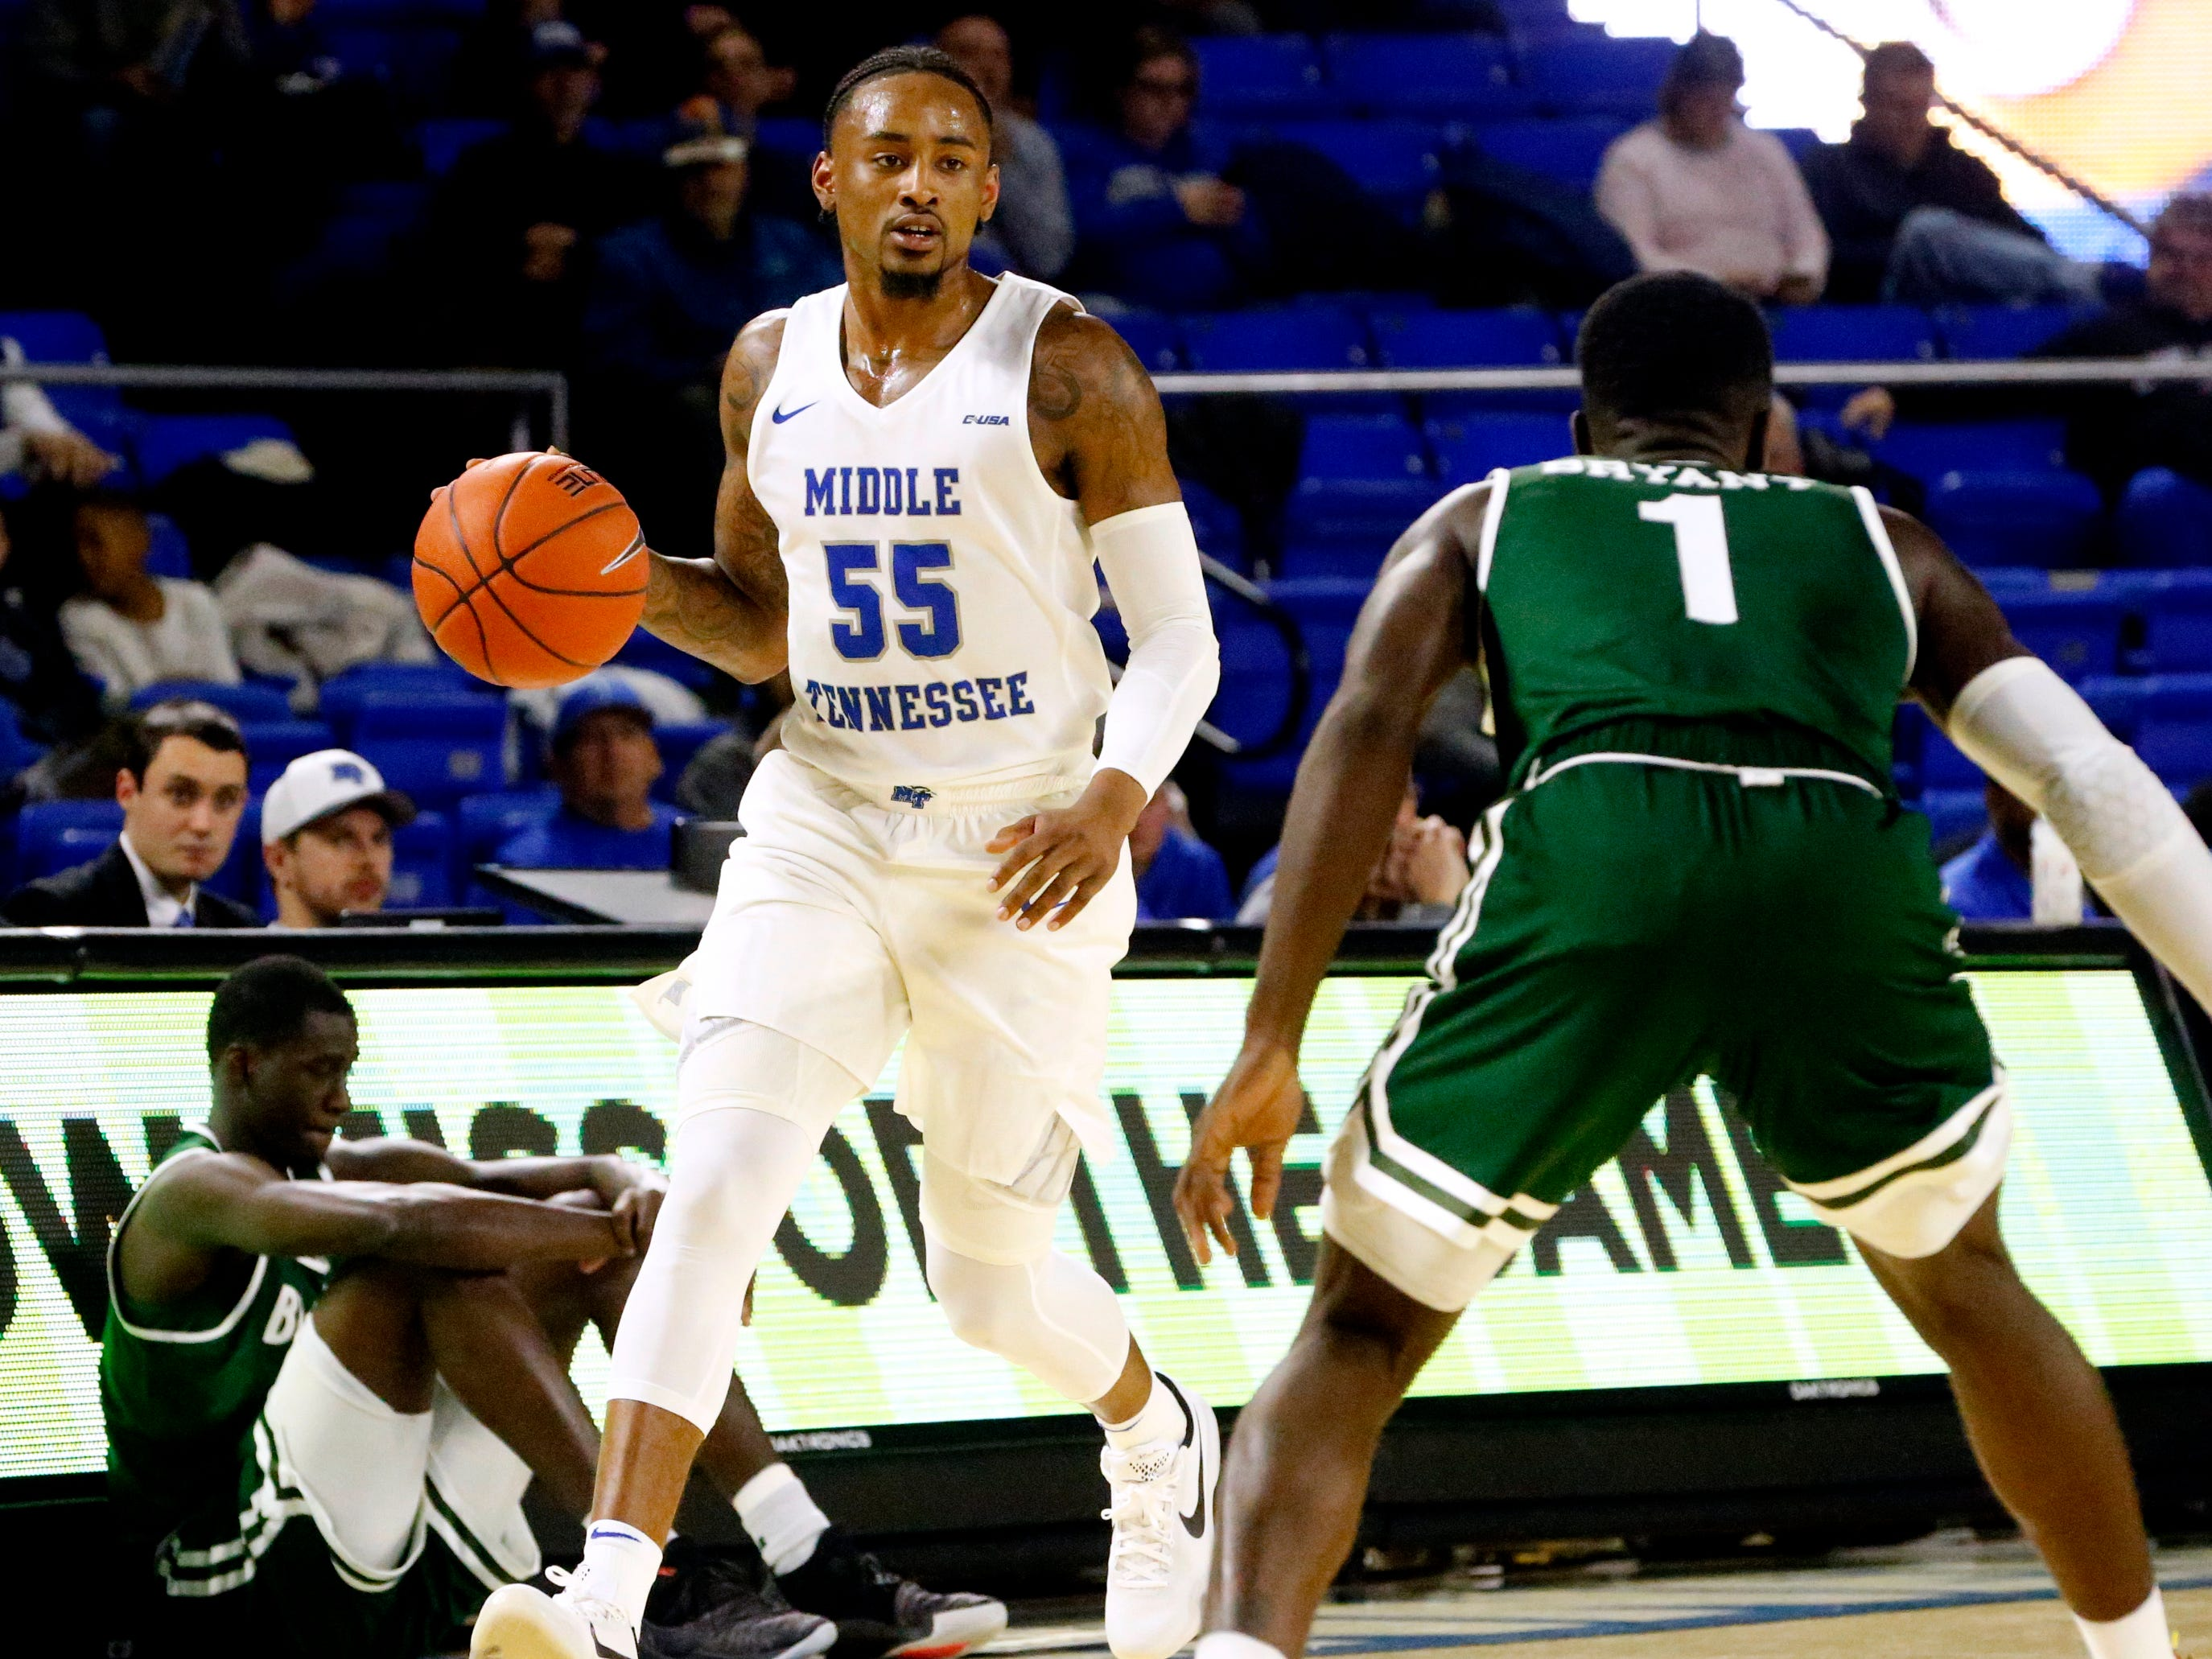 MTSU guard Antonio Green (55) brings the ball down the court as UAB's guard Zack Bryant (1) guards him on Wednesday Jan. 30, 2019.